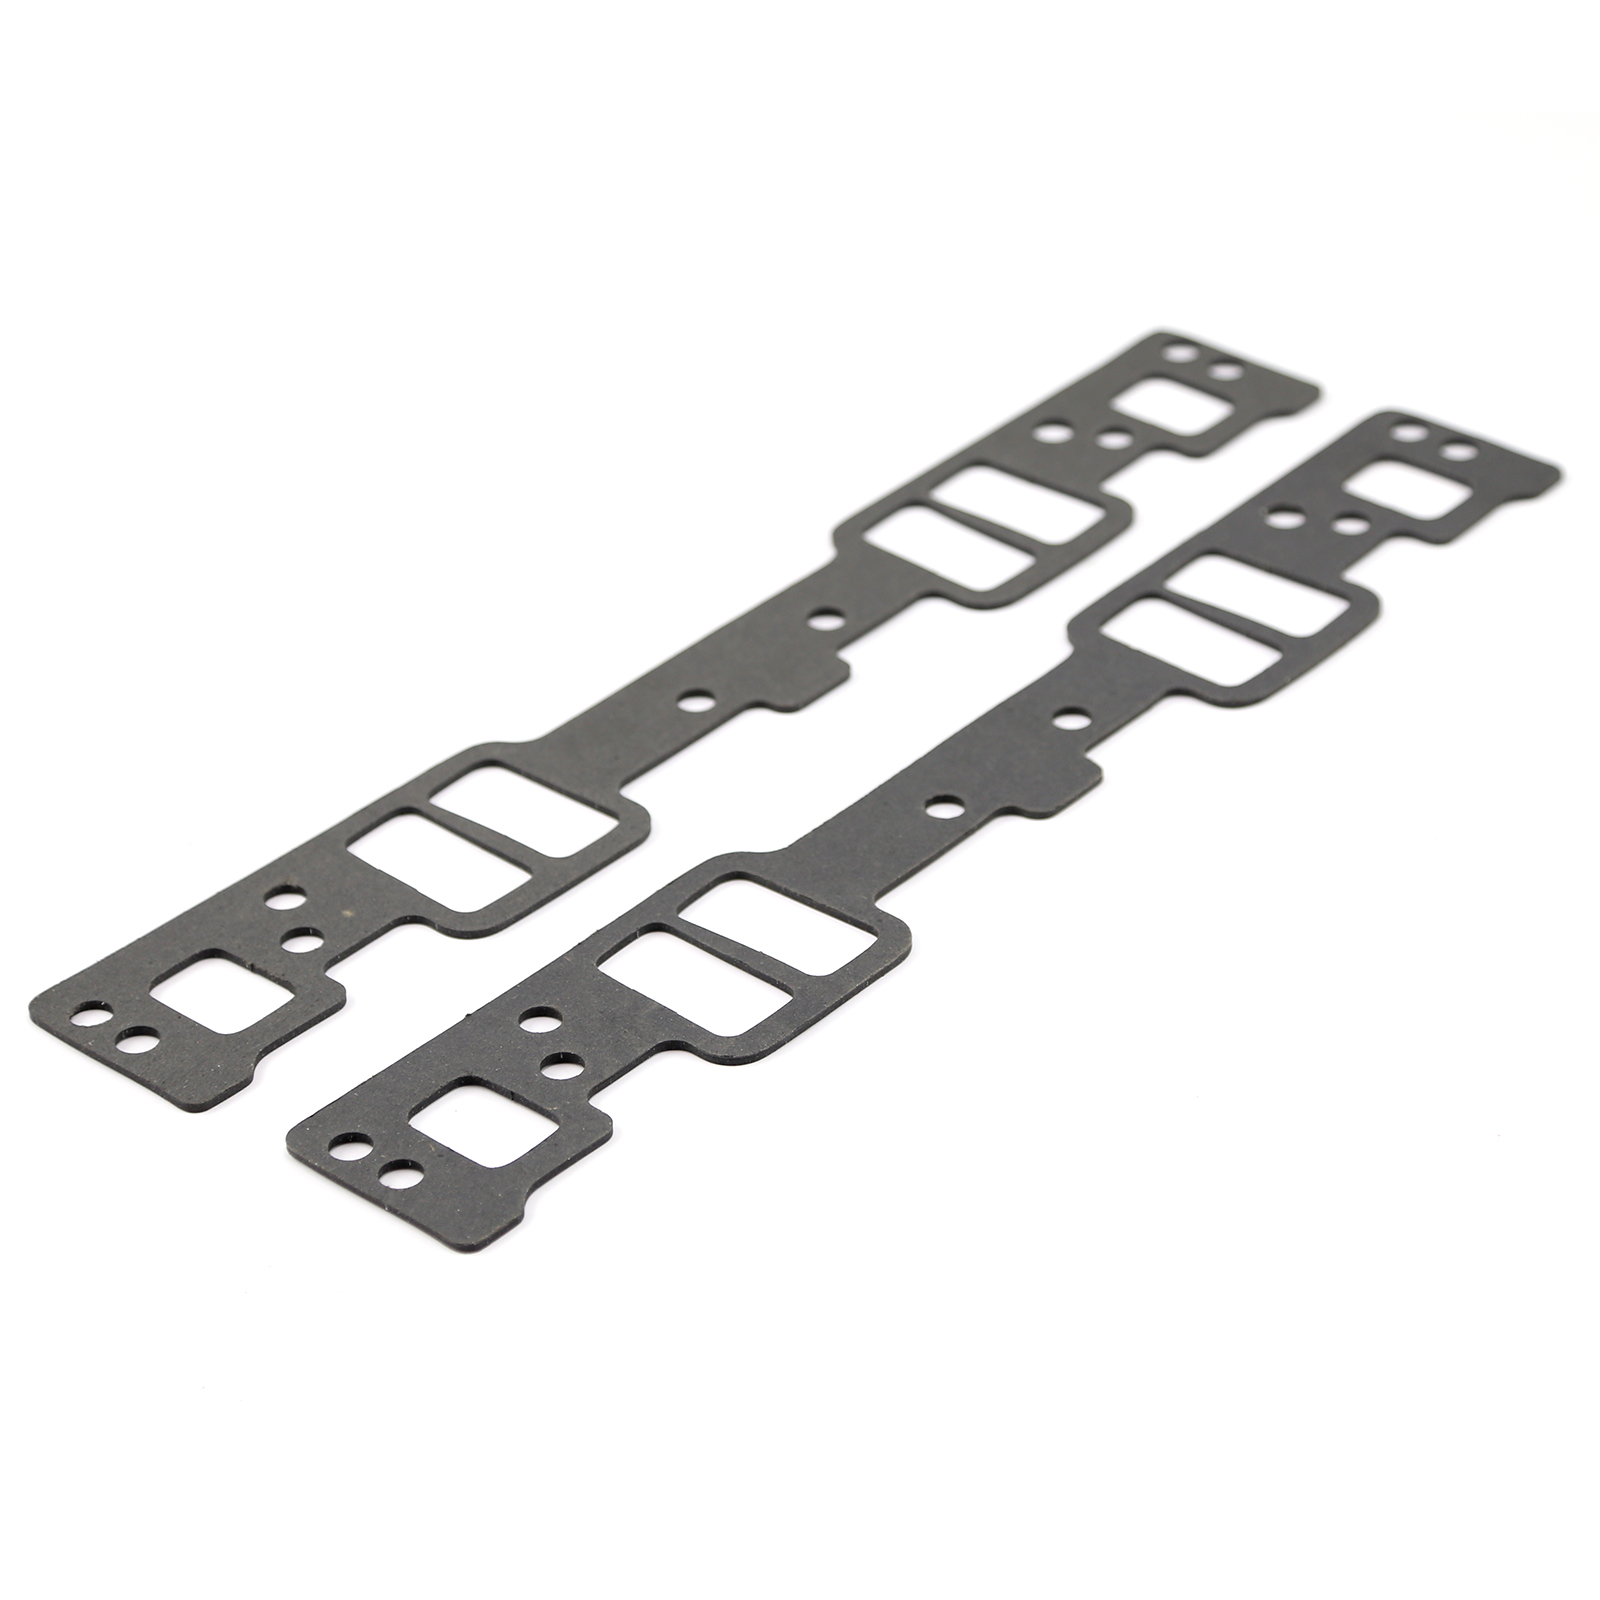 Tools Amp Accessories Gt Gaskets Amp Seals Gt Engine Gaskets